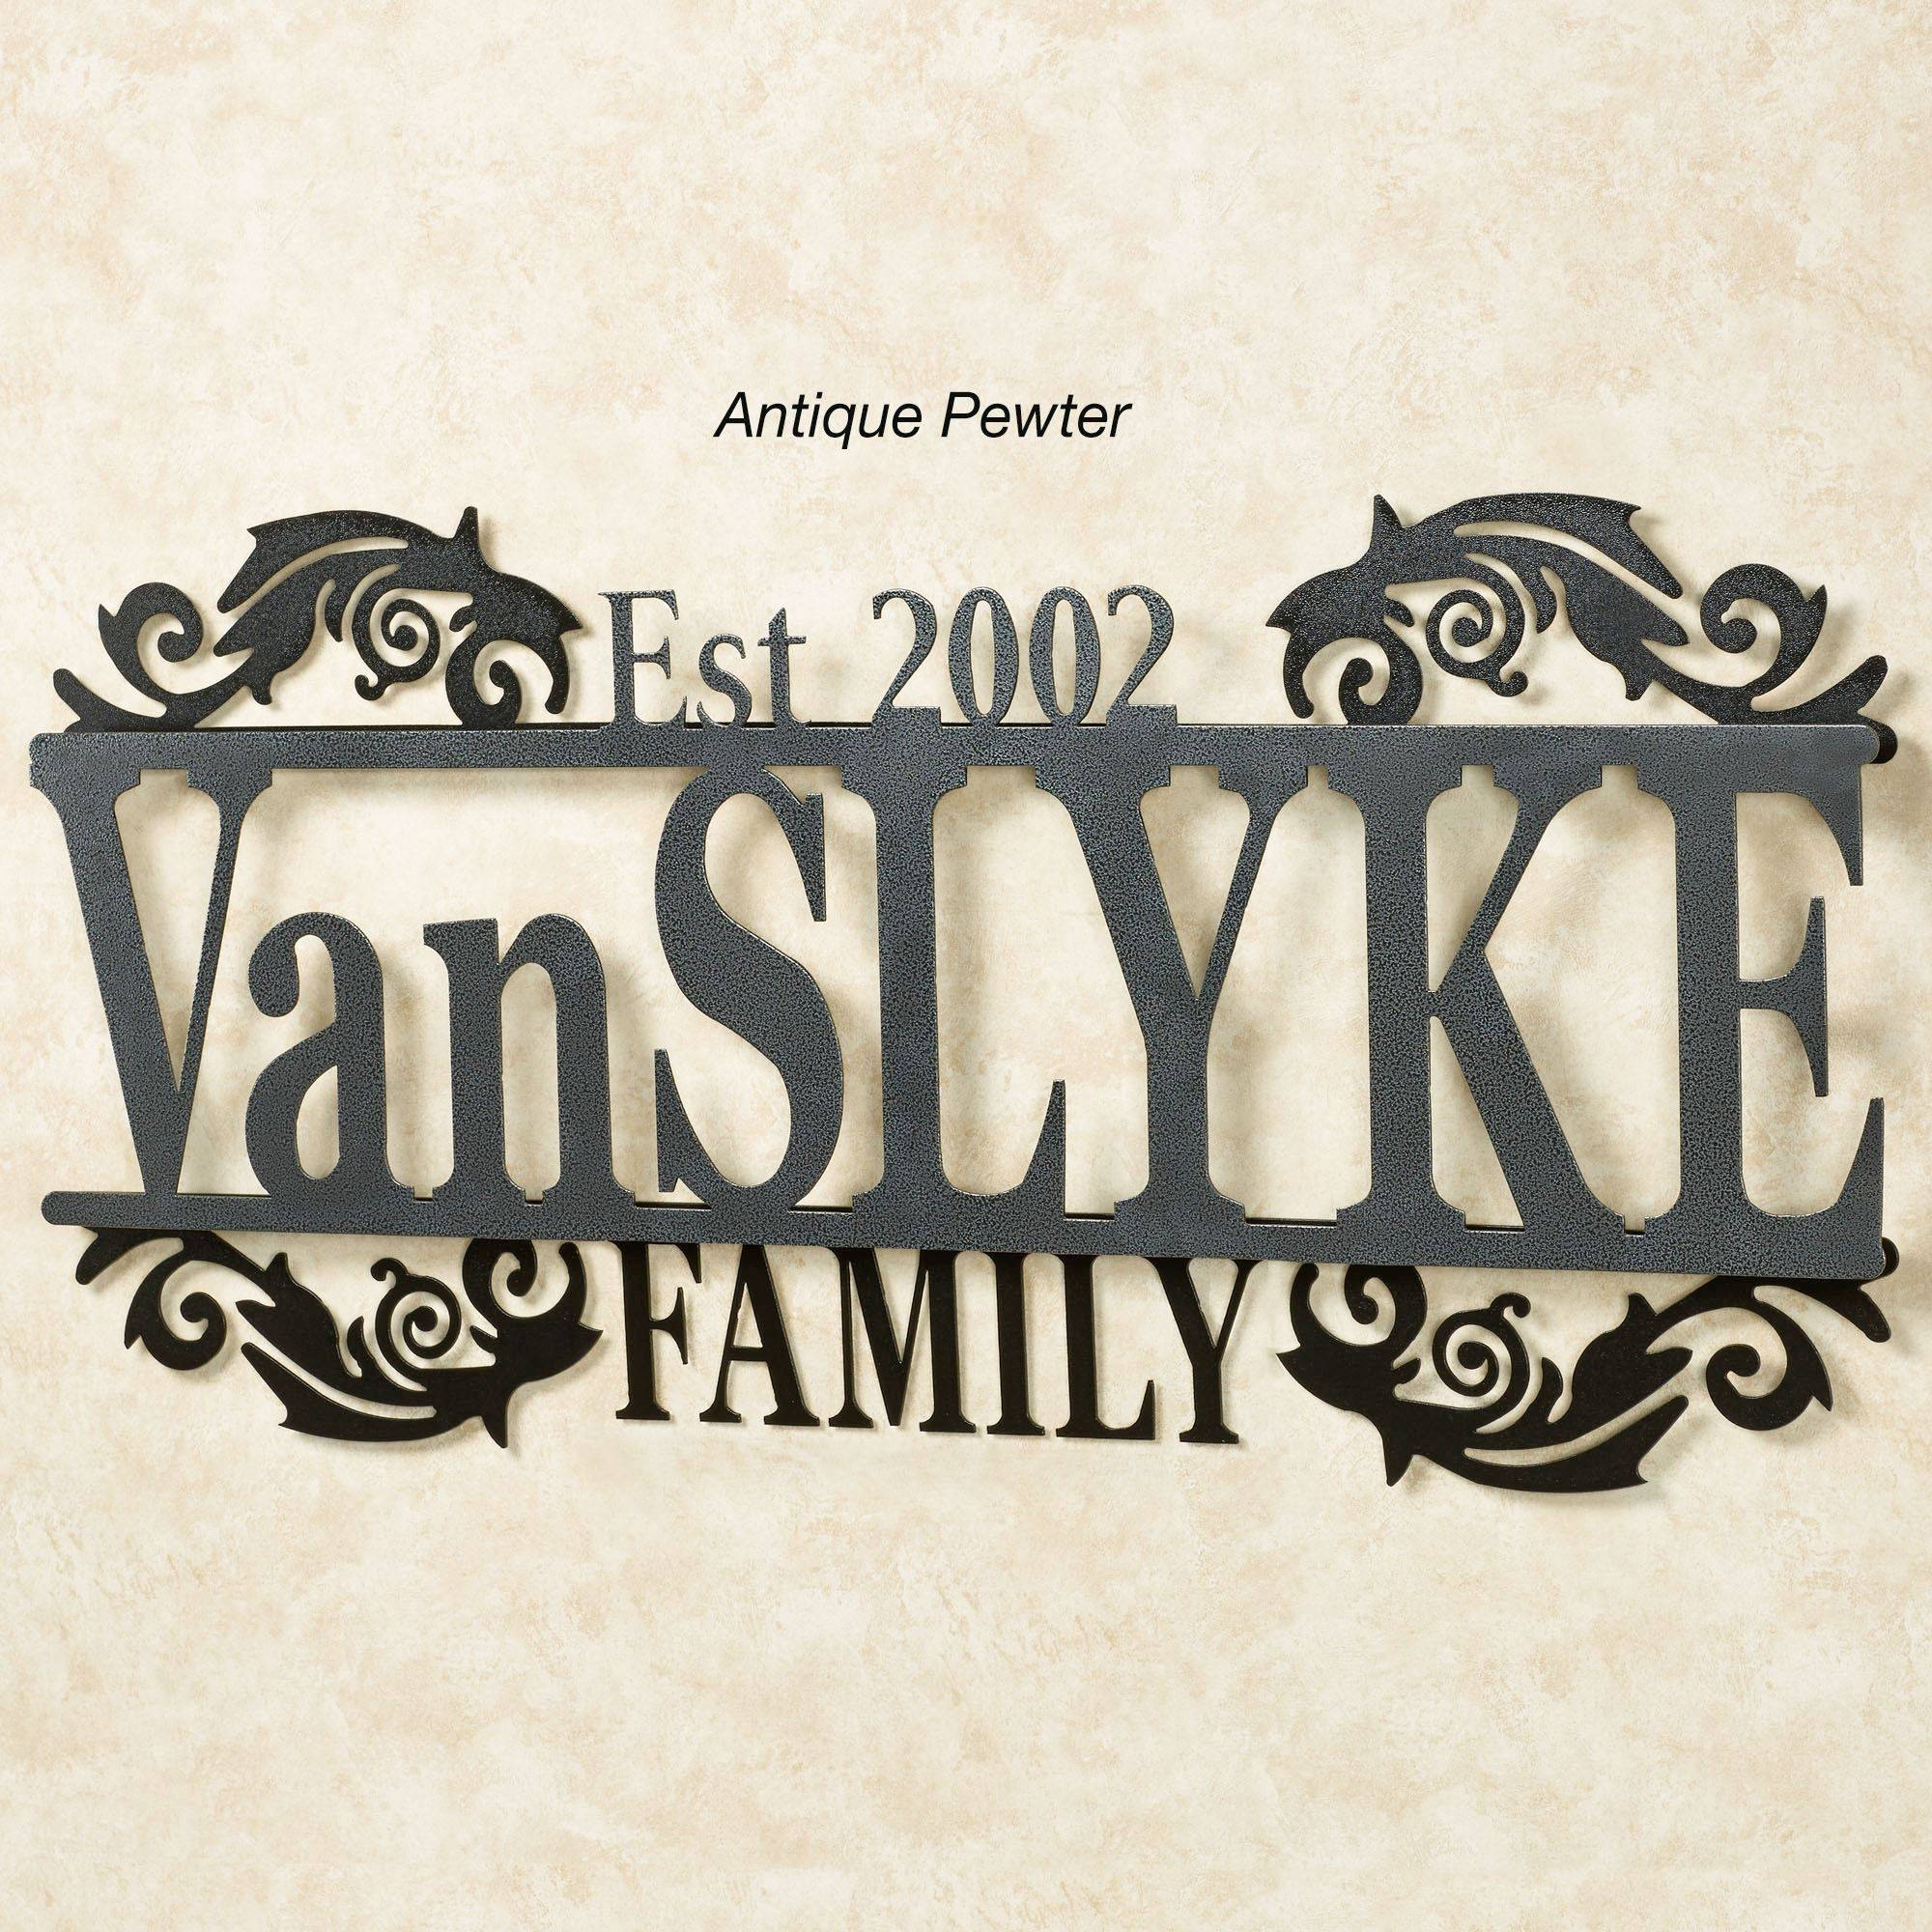 Legacy Family Established Year Personalized Metal Wall Art Sign Throughout Most Current Personalized Family Wall Art (View 8 of 20)